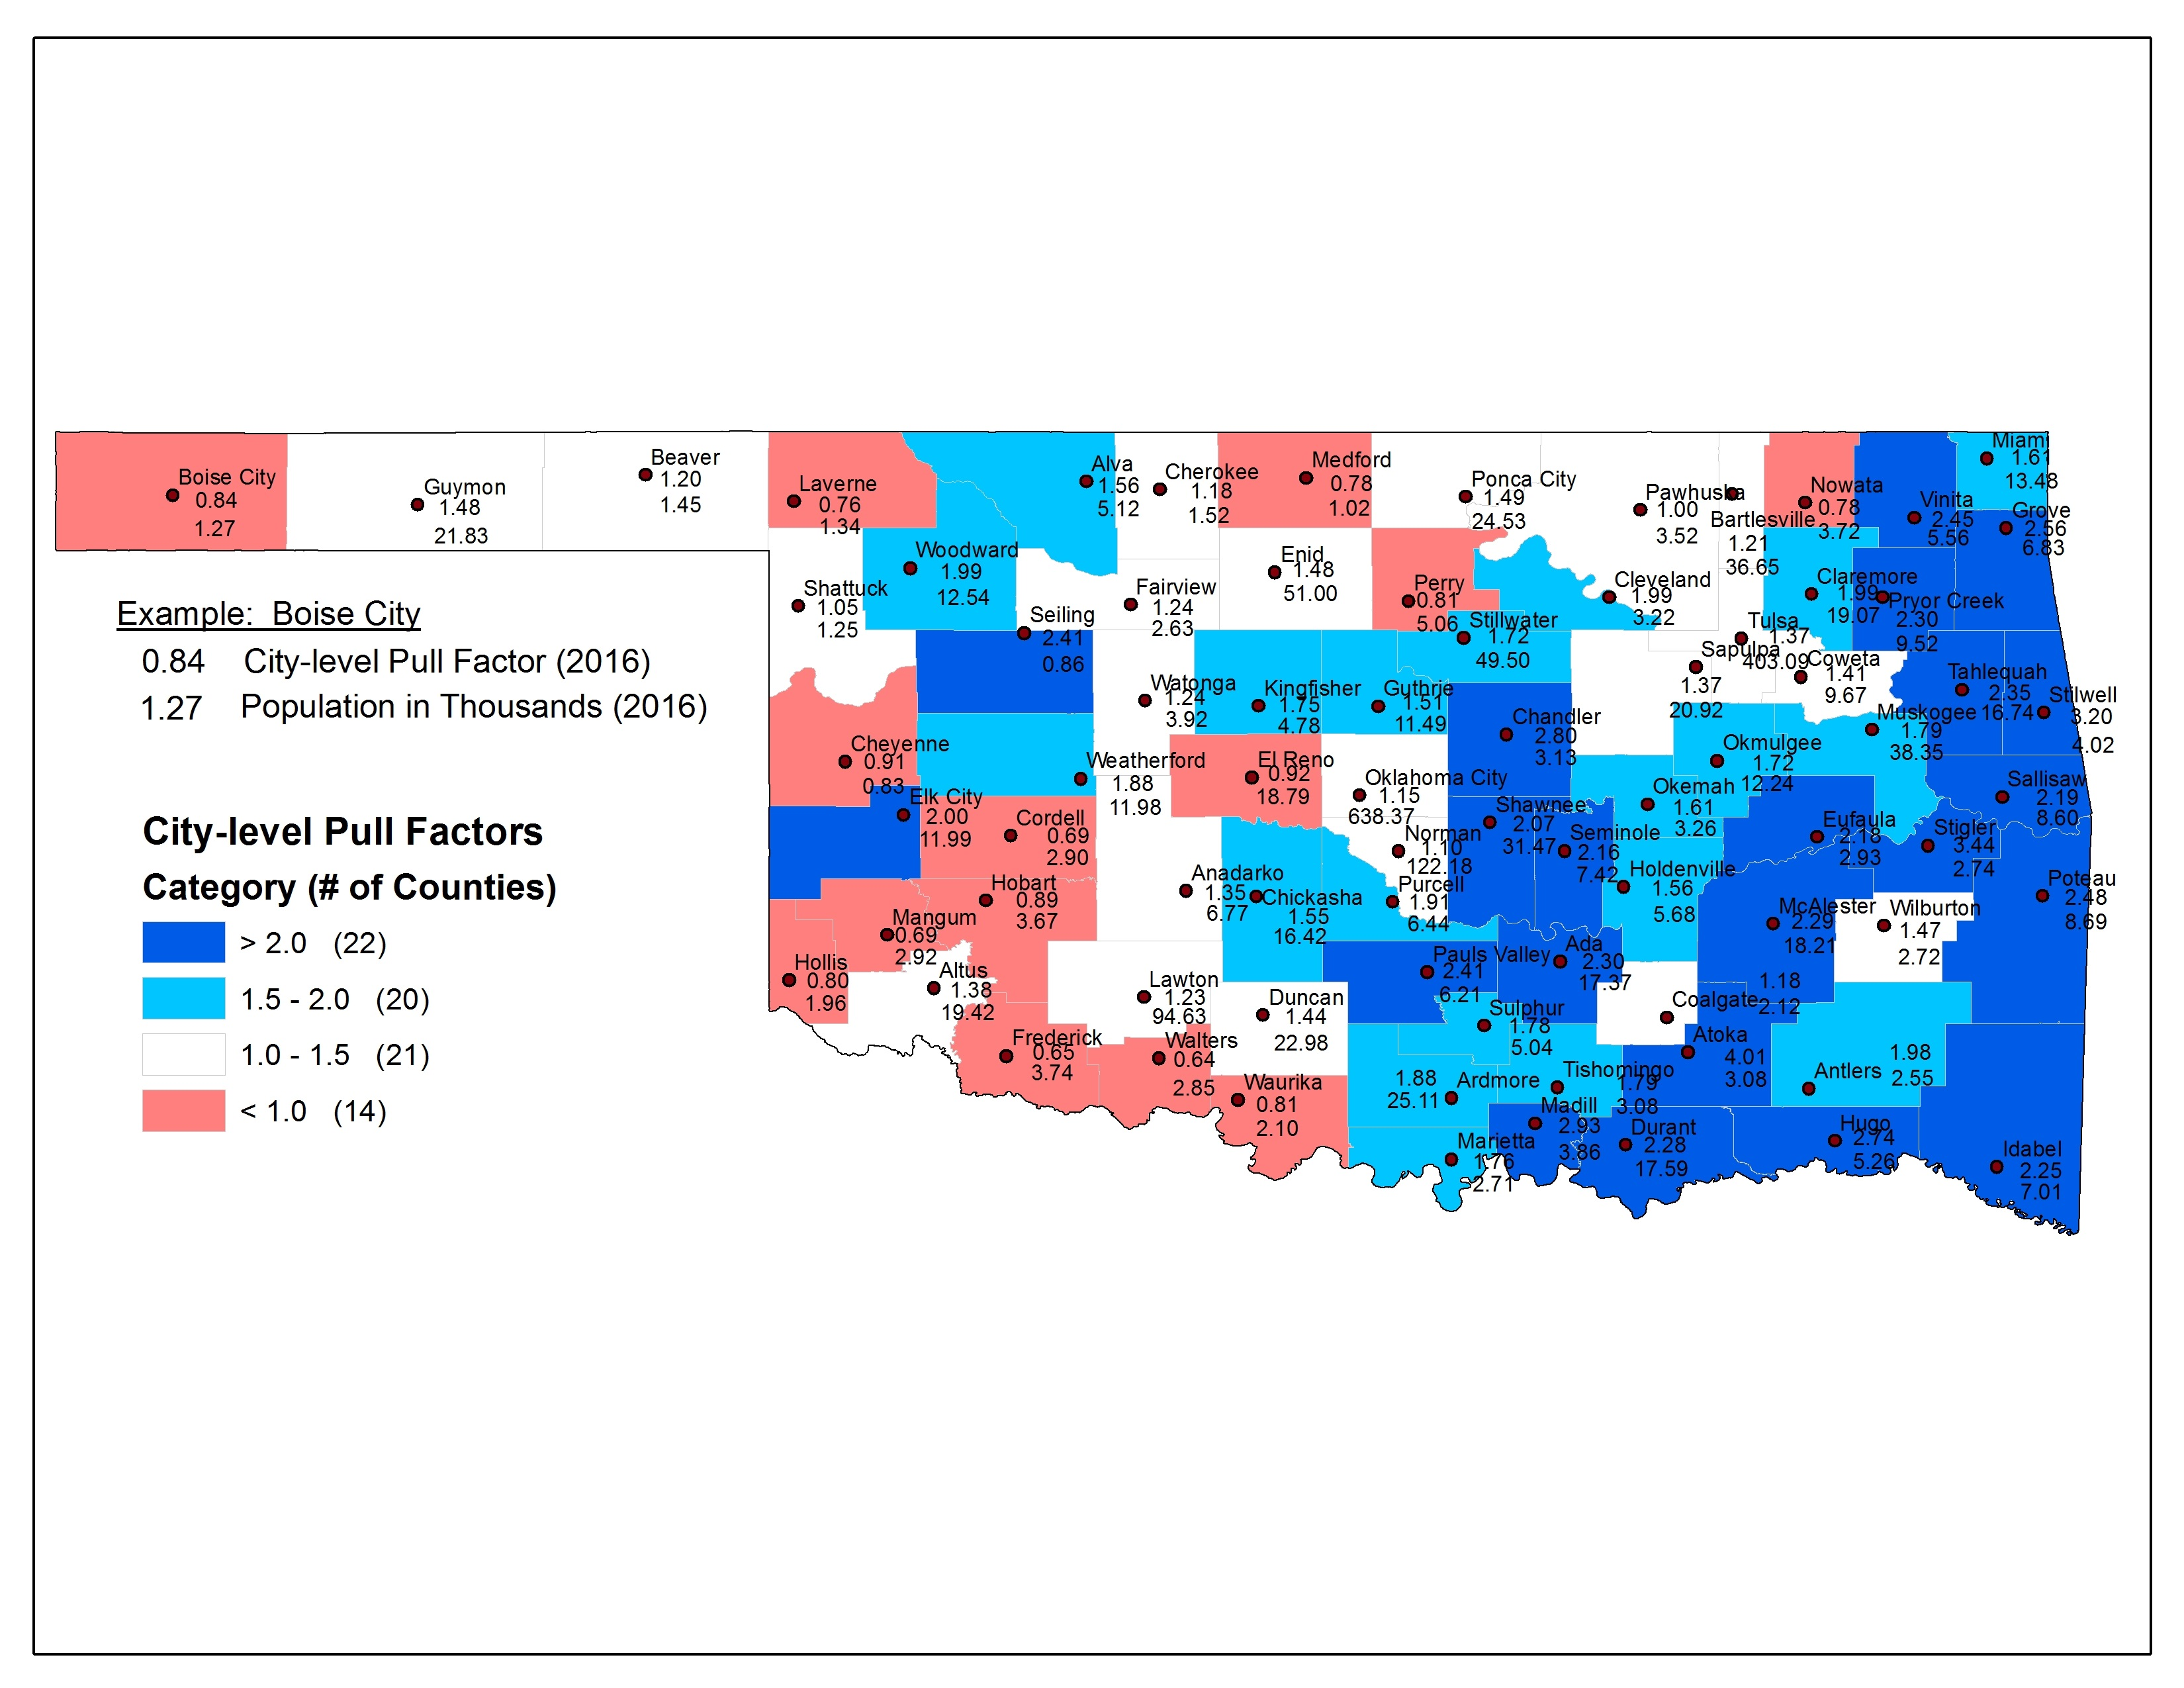 City-level Pull Factors for the Largest Town in each Oklahoma County (2016).